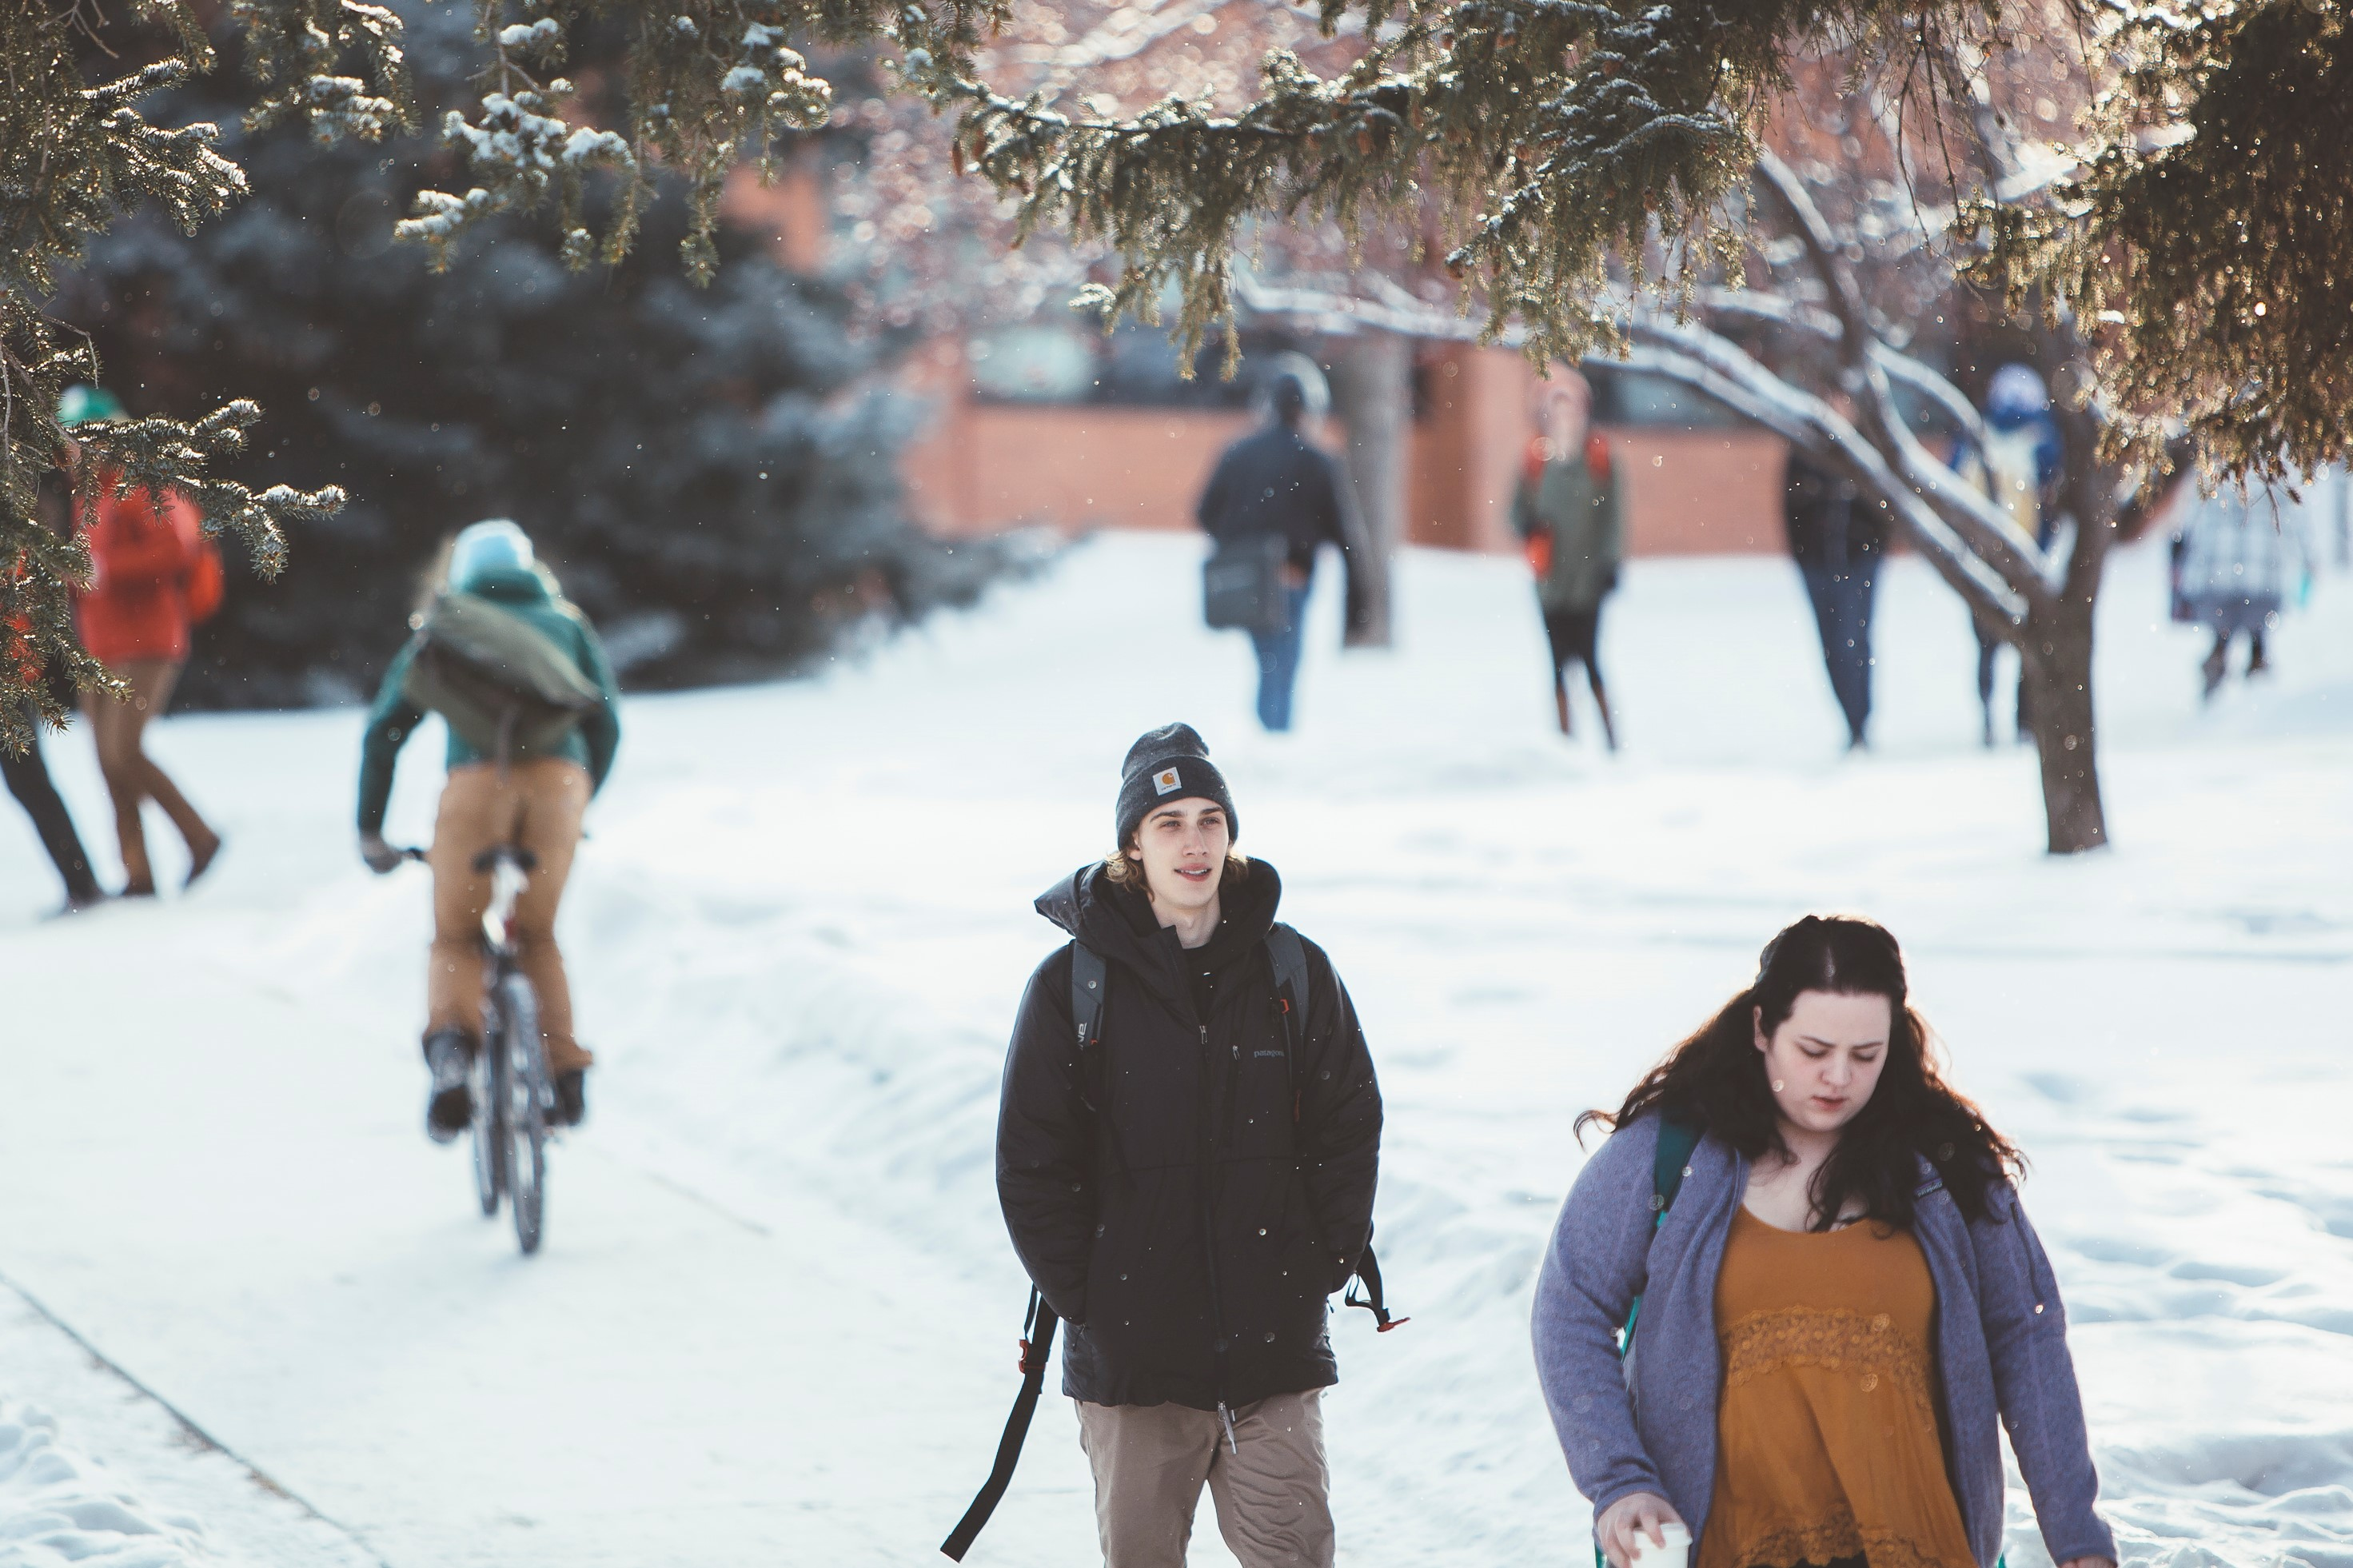 Students walking on campus in light snow.